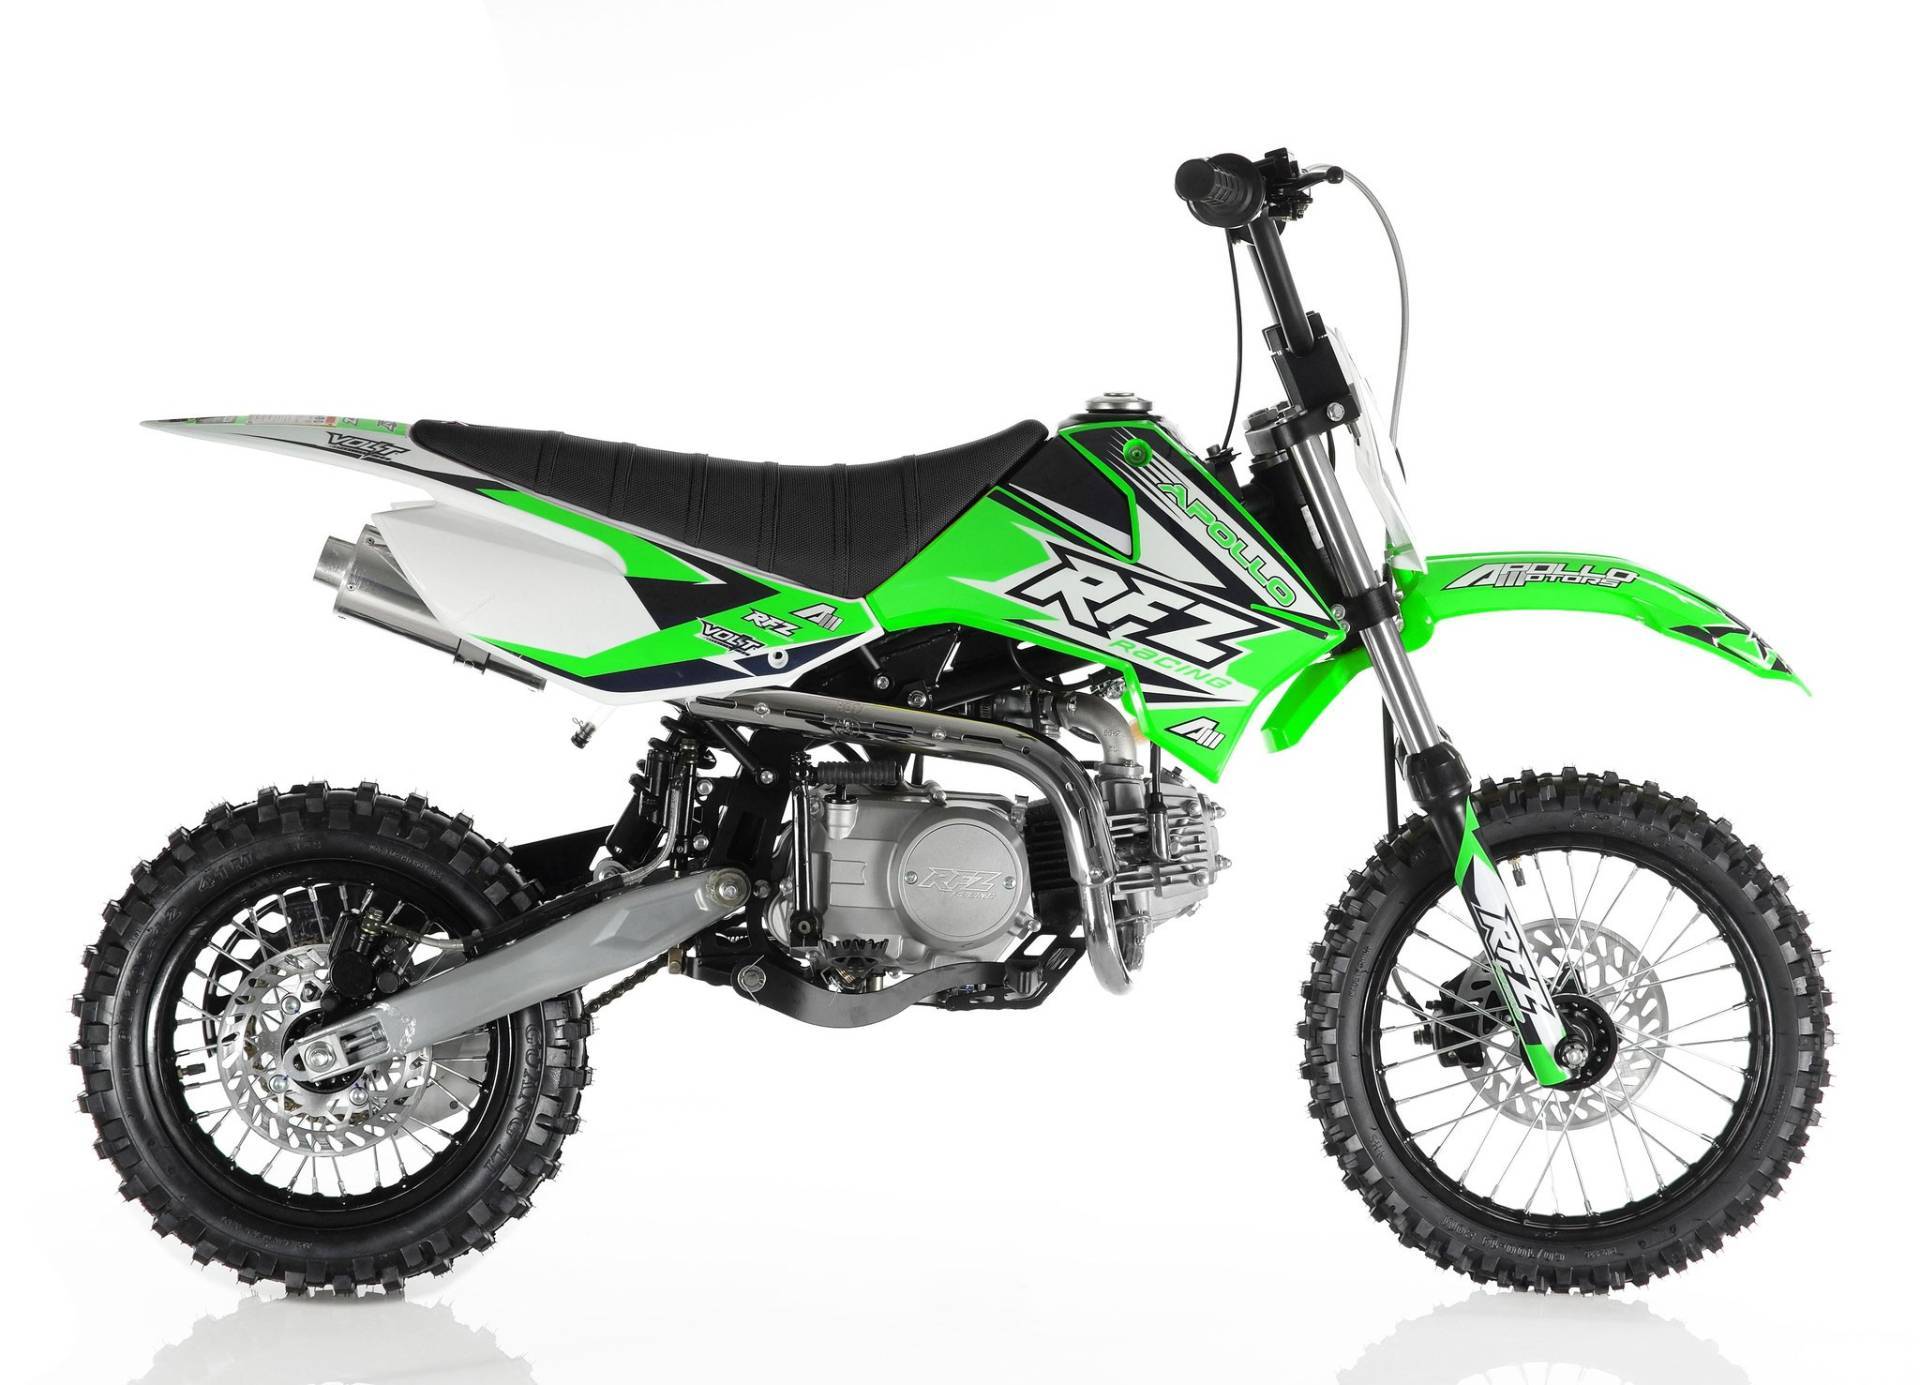 2019 Cougar X4 Dirt Bike in Jacksonville, Florida - Photo 8